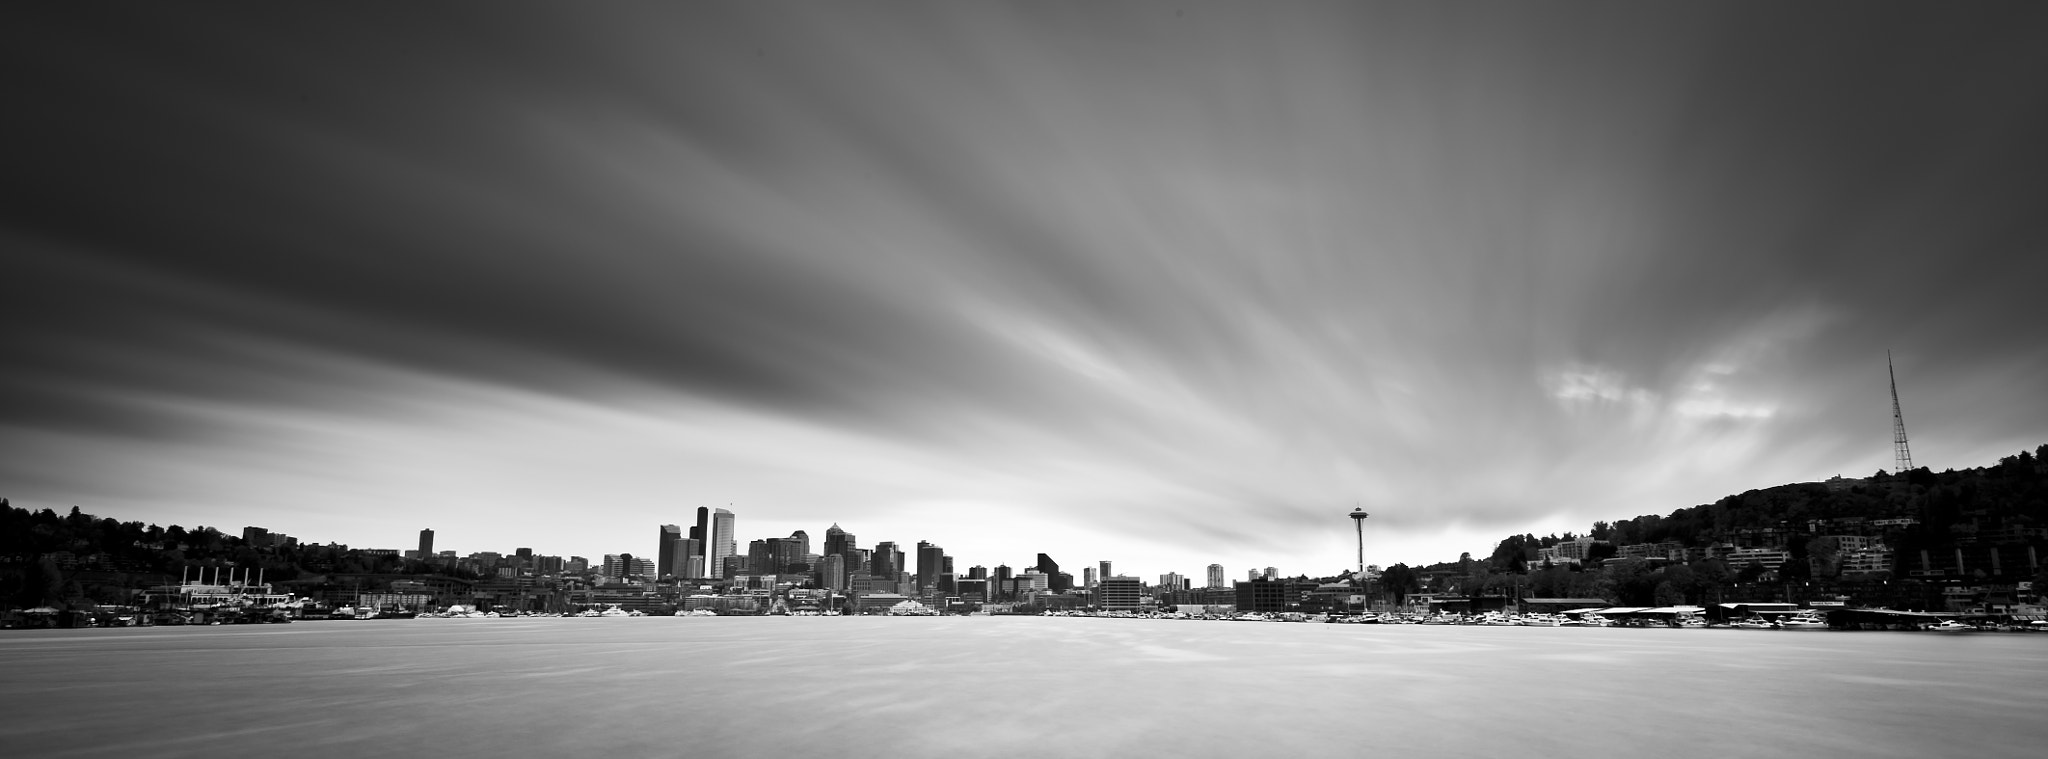 Photograph Lake Union by Dirk Houghton on 500px